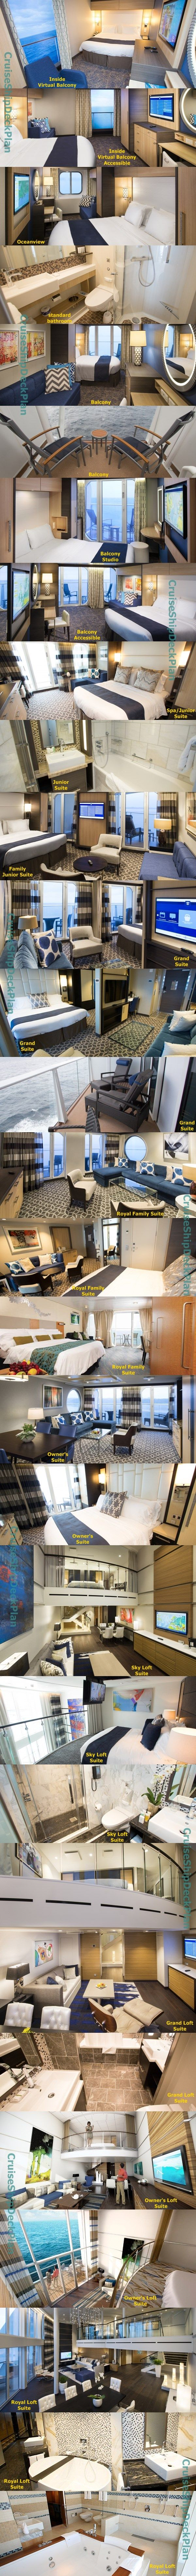 Royal Caribbean Ovation of the Seas cabins and suites photos. Wow! To the last rooms!!! Awesome!